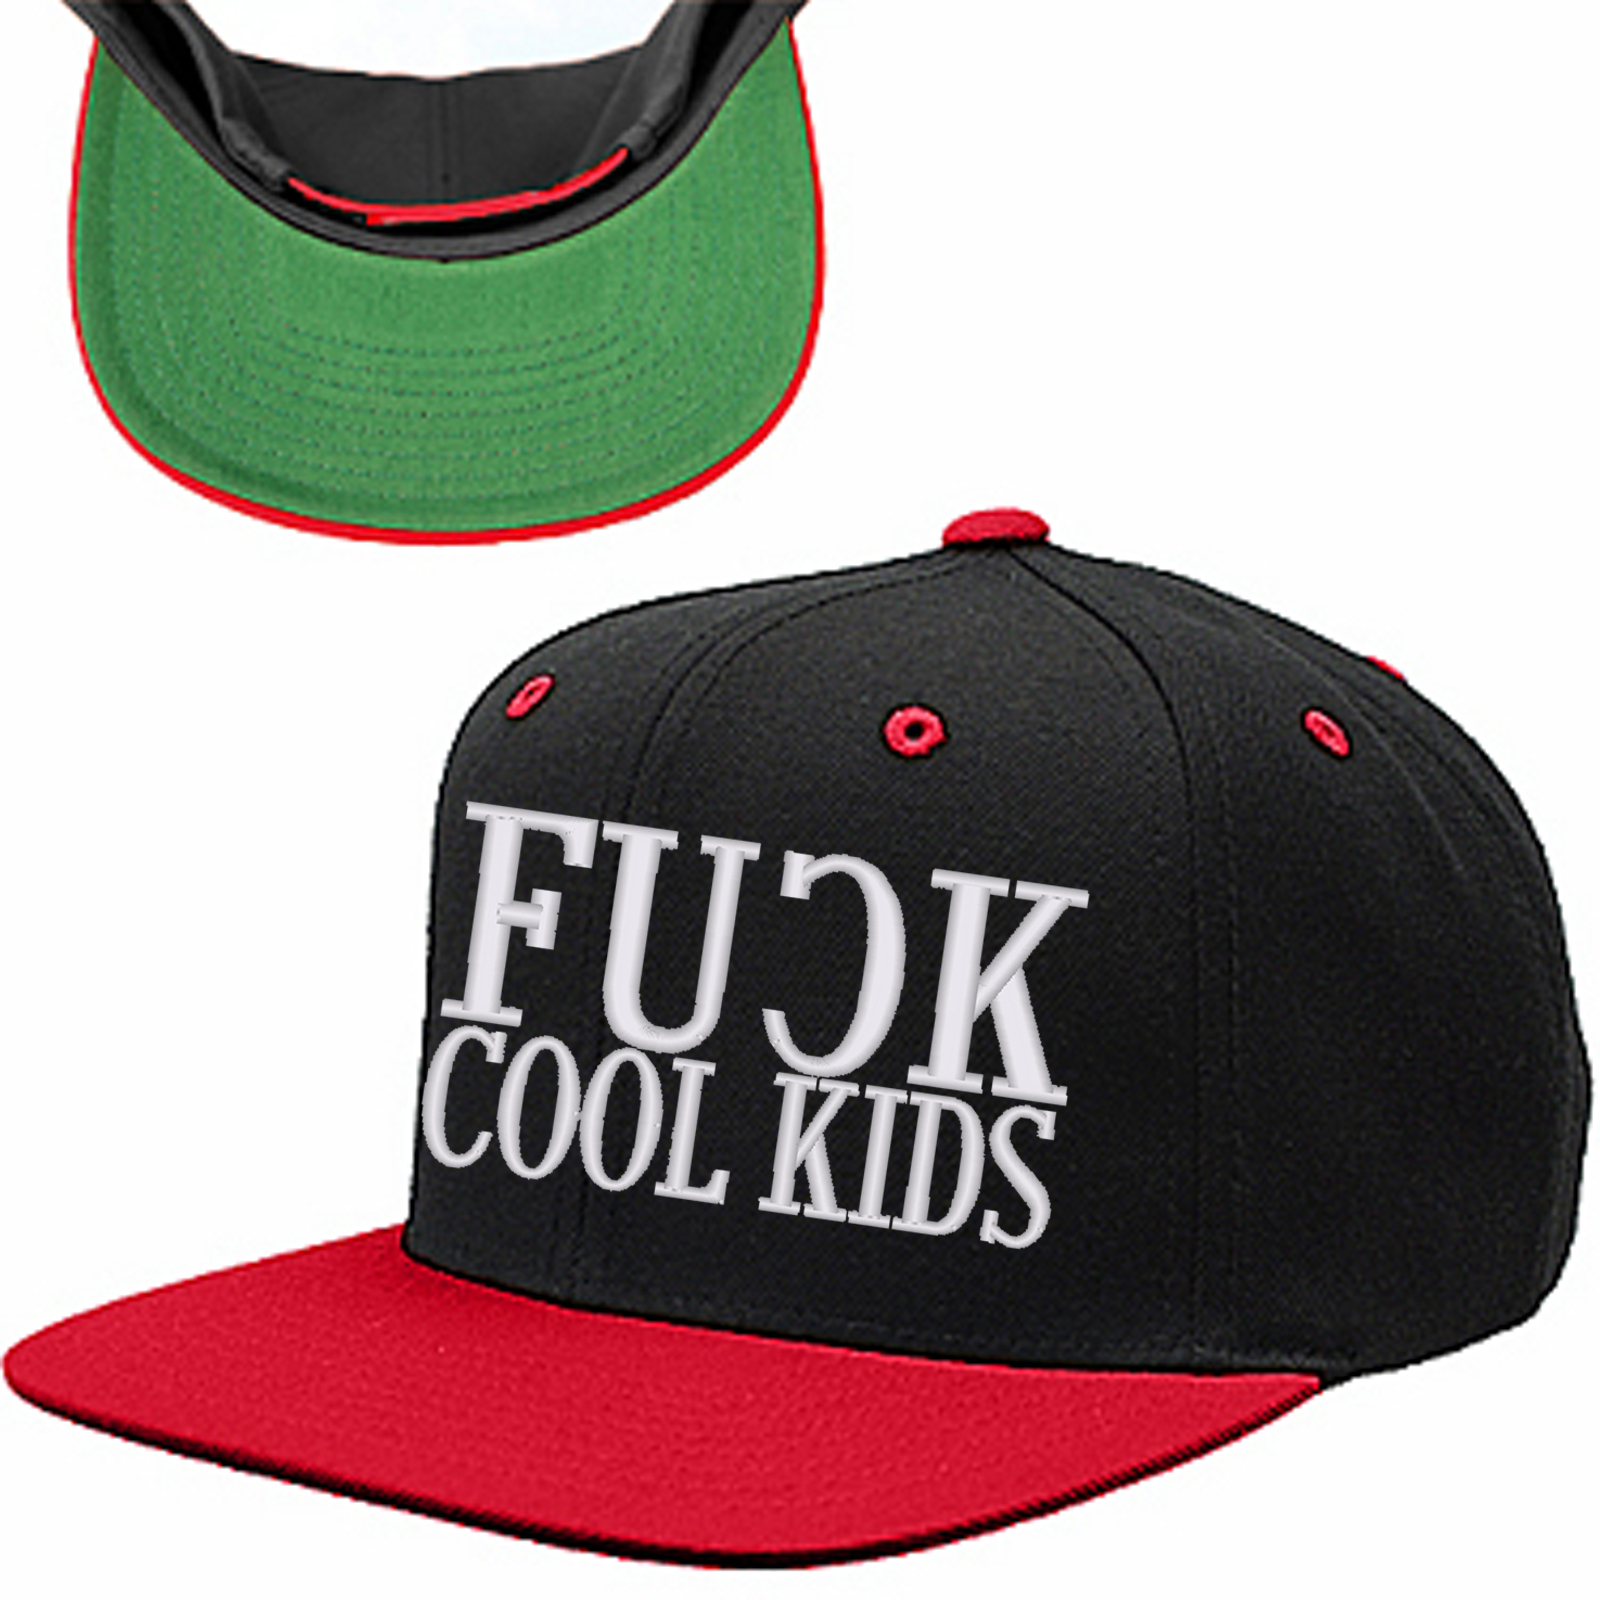 Cool Snapback Hats: Fu K Cool Kids Snapback Hat Cool Kids Hat